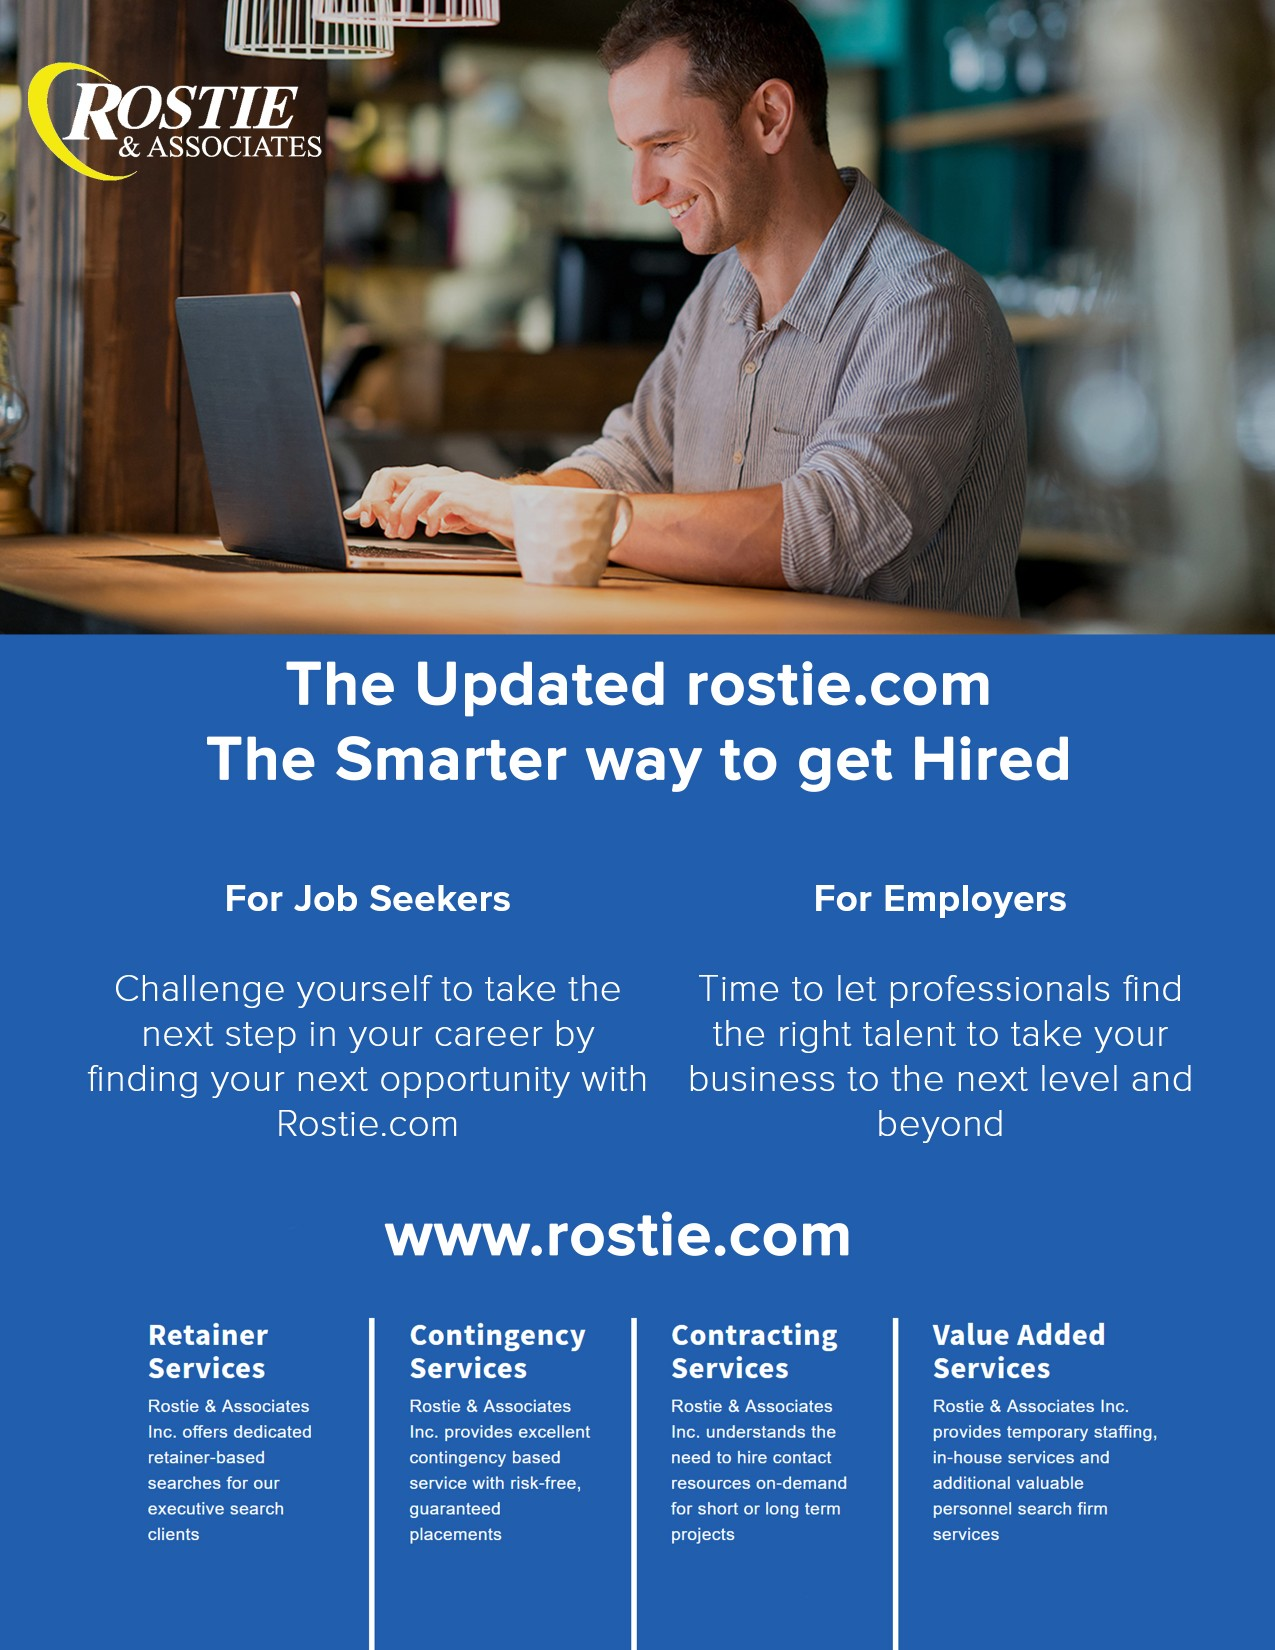 Winter Rostie Group Scoop Rostie.com Advertisement